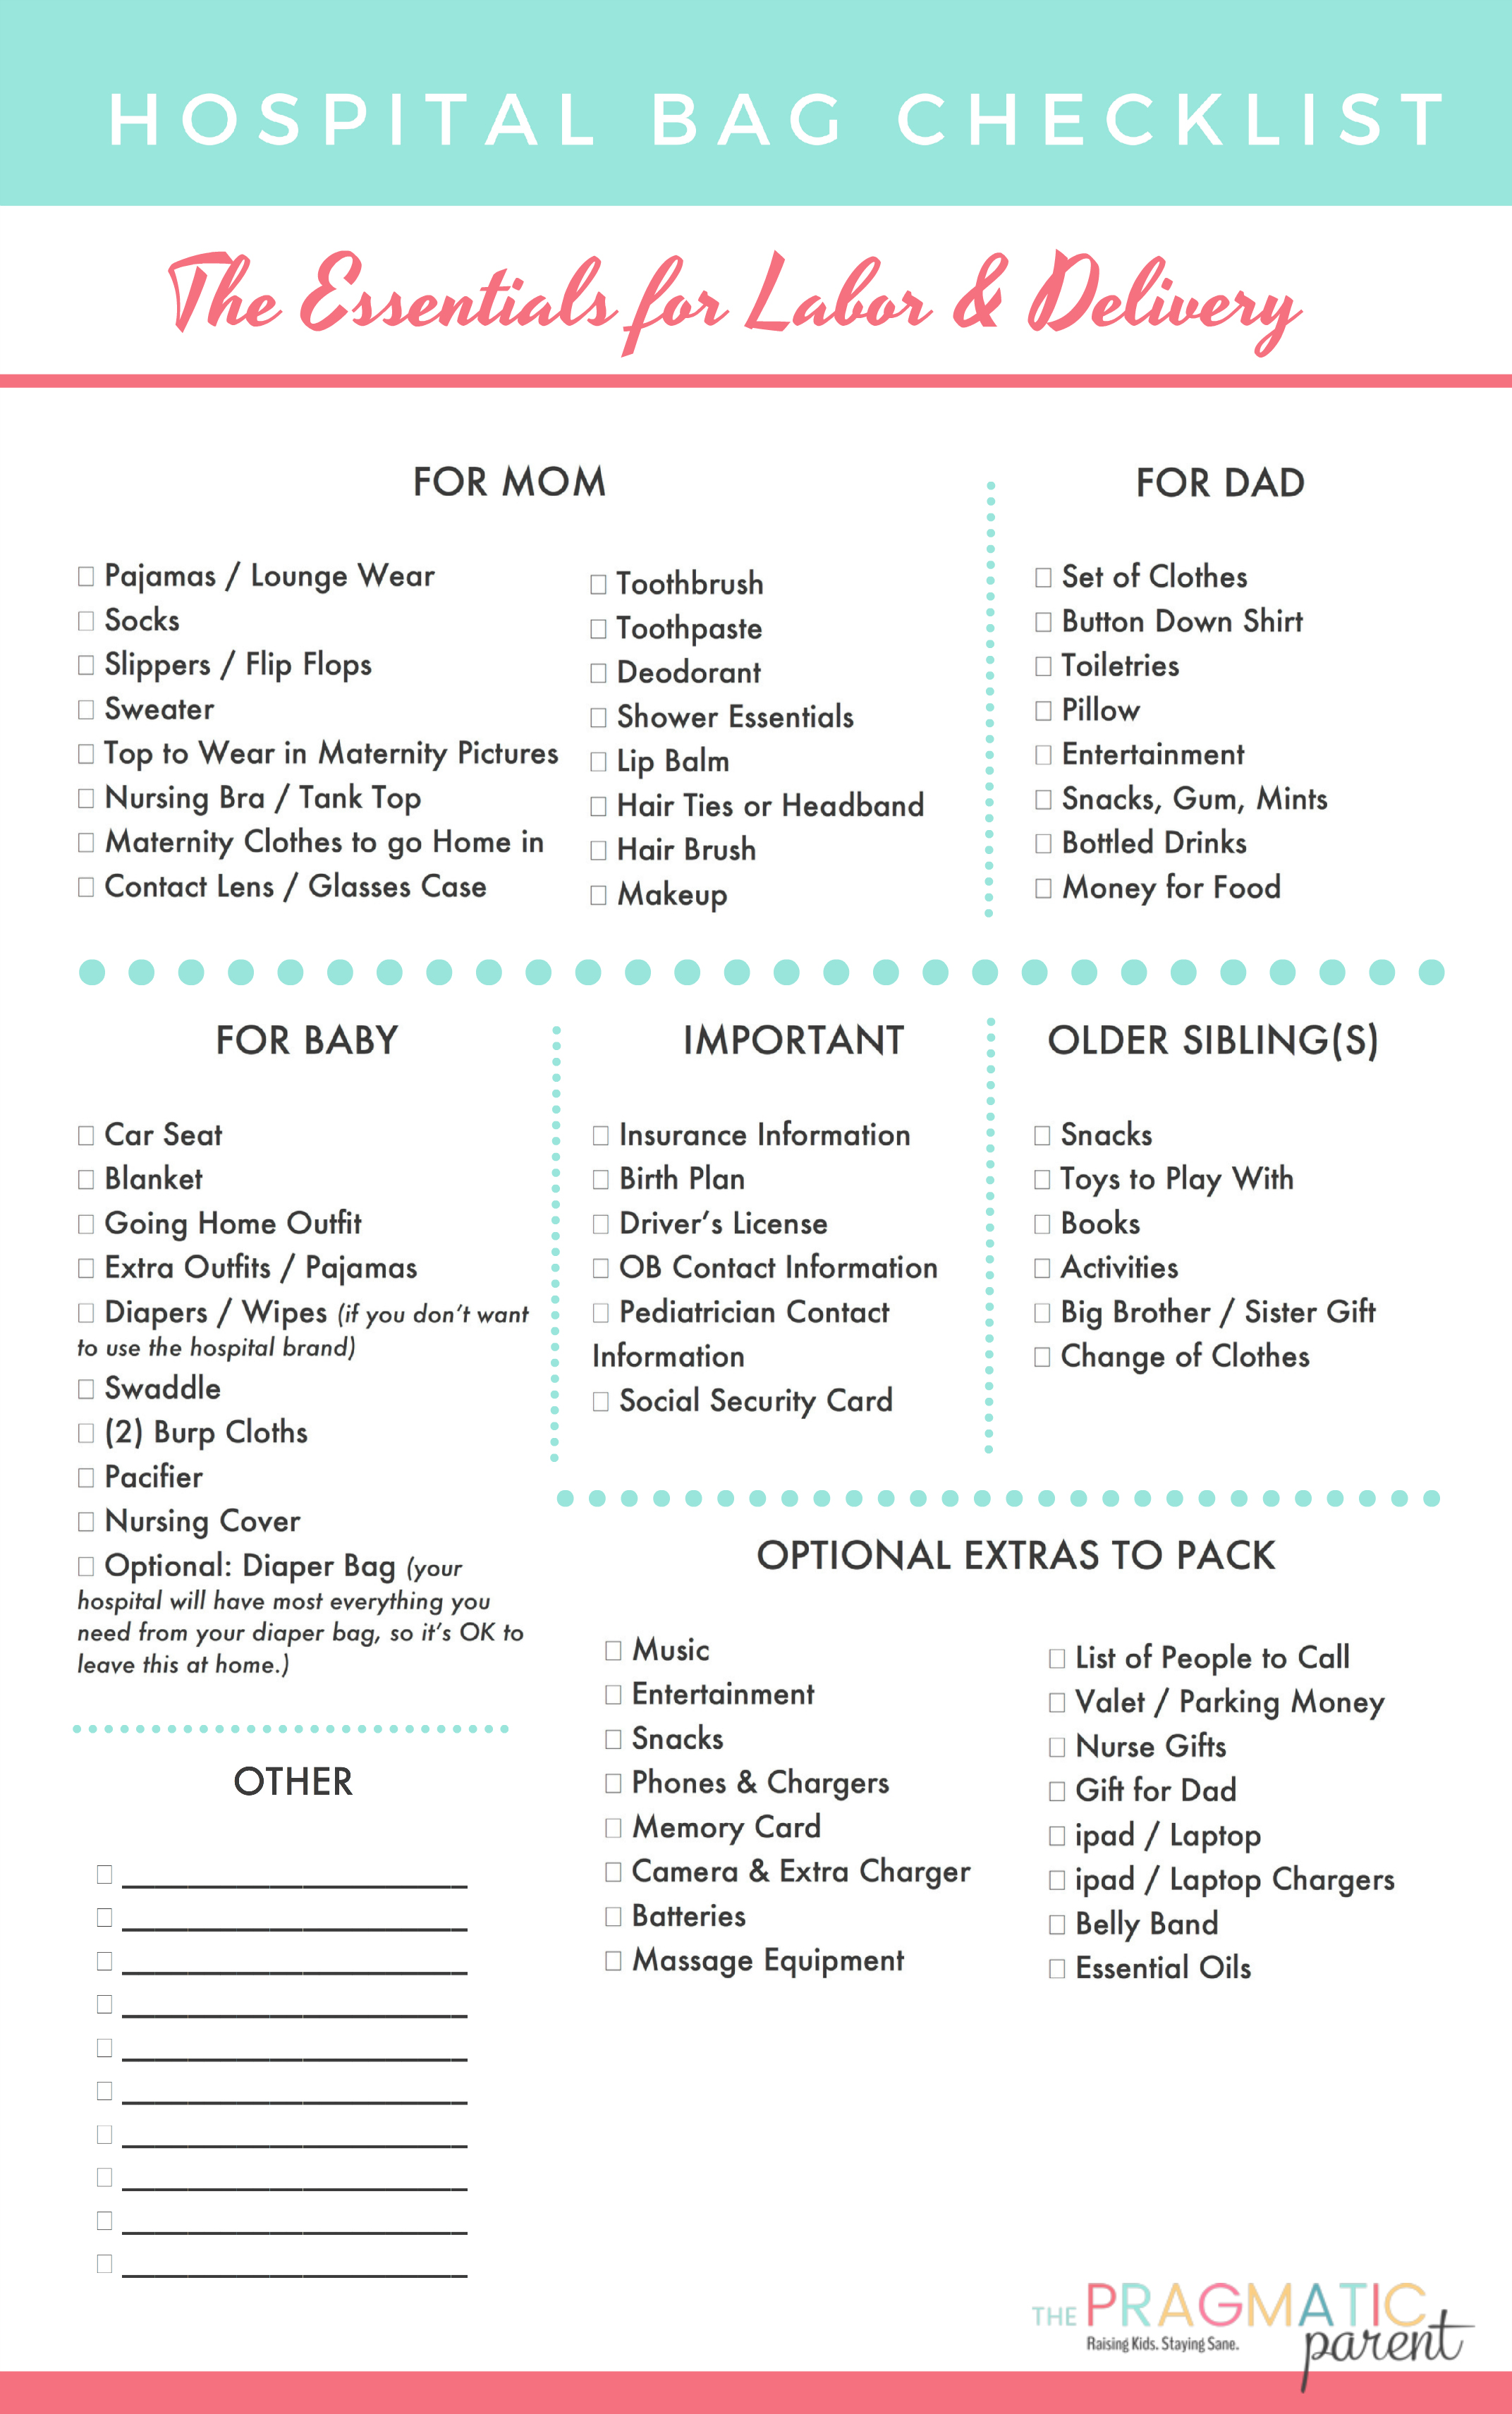 Download Your Hospital Bag Packing List for Labor and Delivery and Hospital Bag Checklist with the Essentials for Labor & Delivery. Printable Labor & Delivery Hospital Bag Checklist. What should I pack for labor? What do I pack in my hospital bag? Here is a FREE Printable Hospital Bag Packing List Checklist